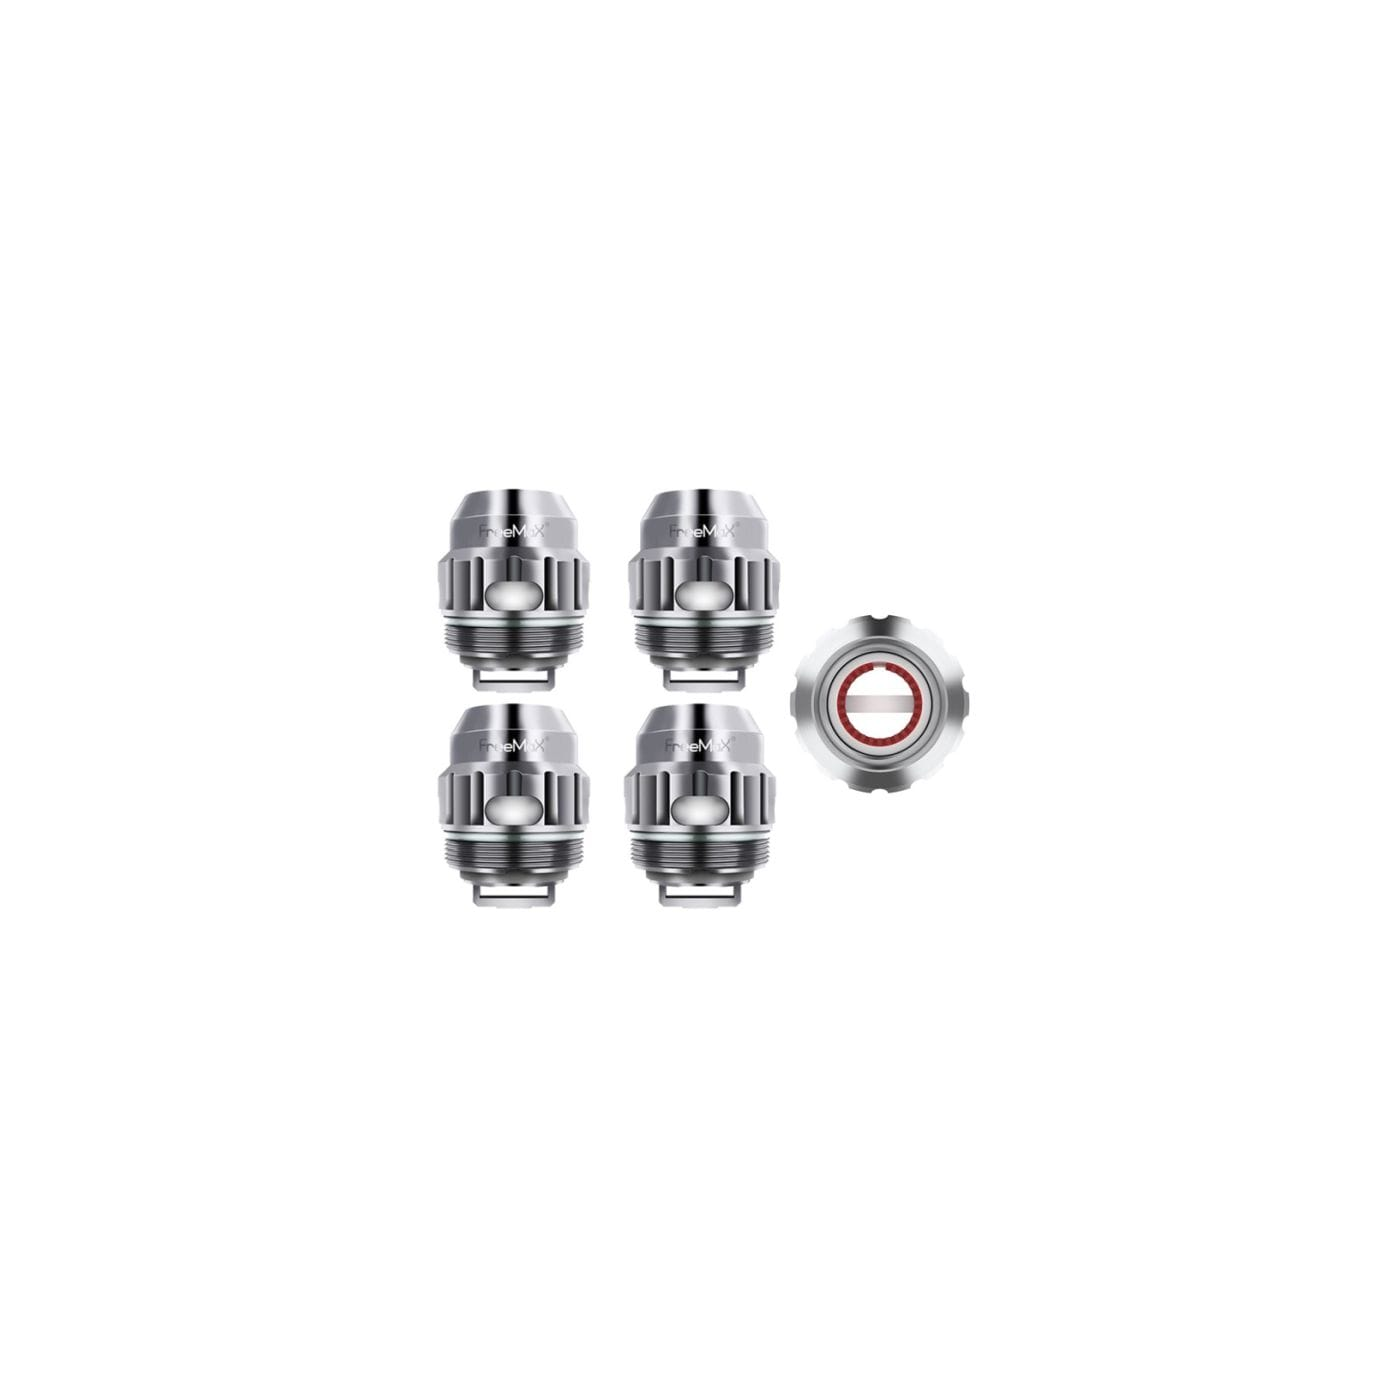 Freemax TX1 SS316L Mesh Replacement Coil - 5 Pack